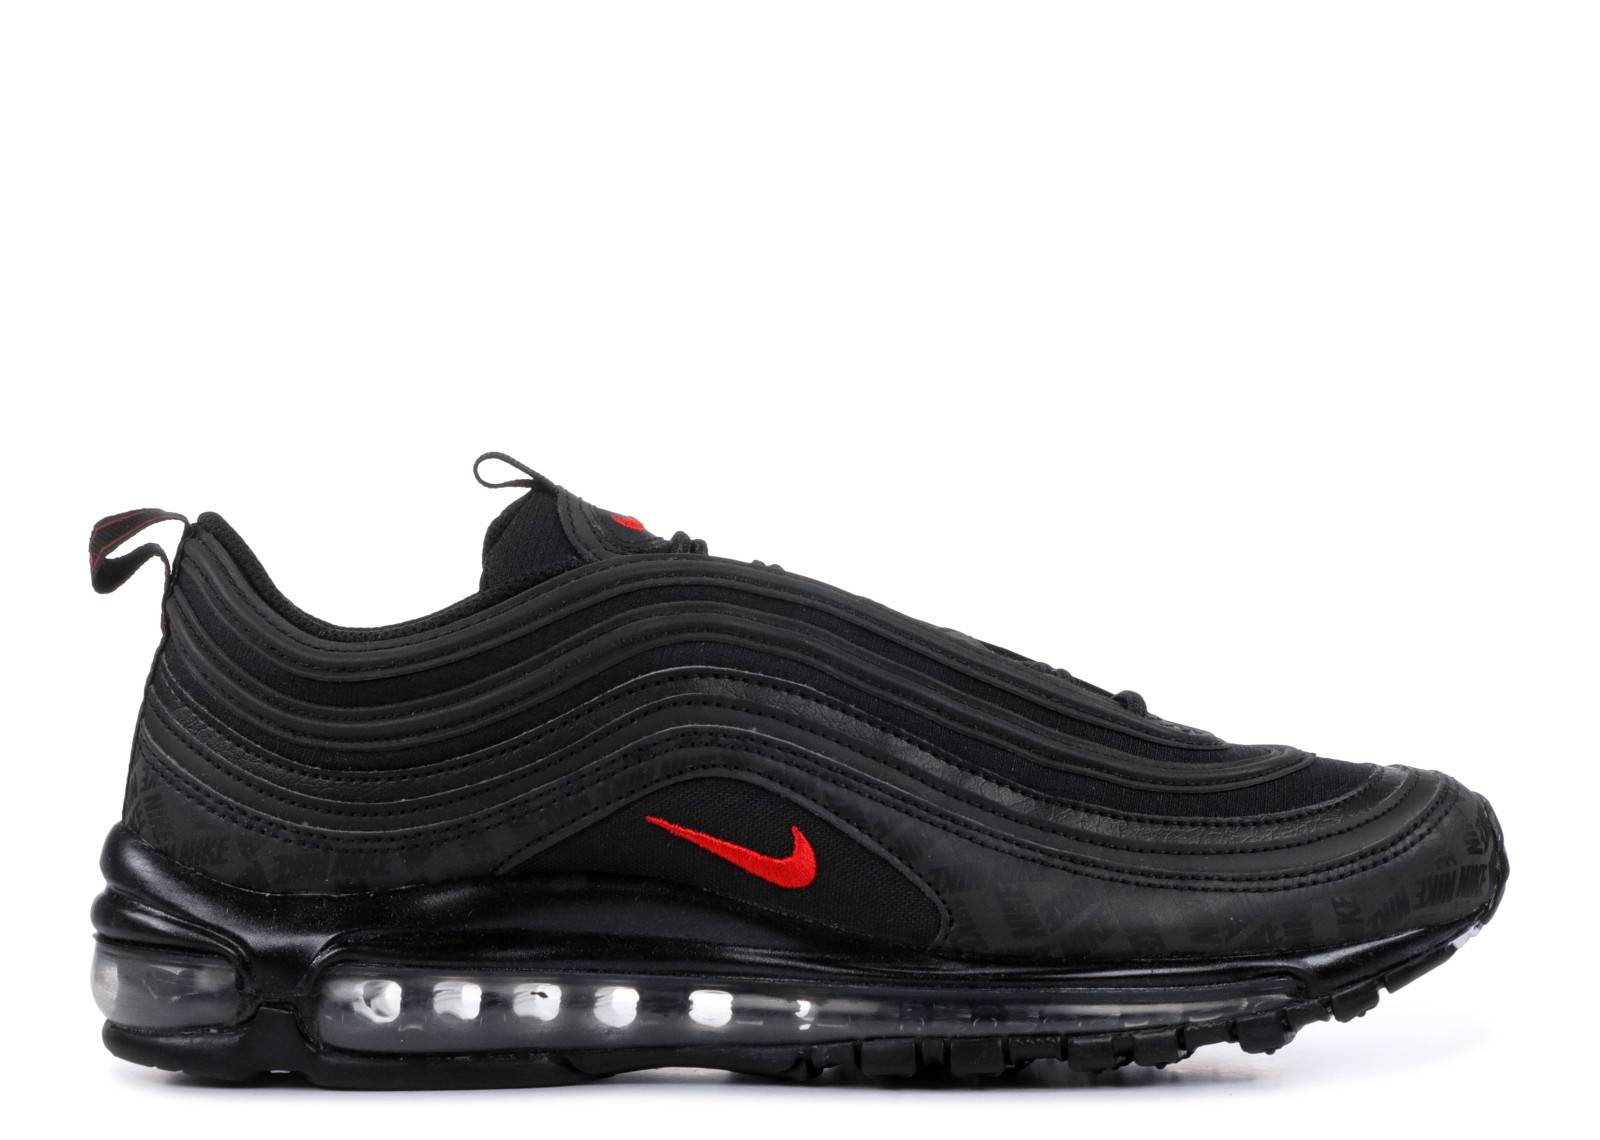 New Release Mens Nike Air Max 97 Shoes BlackUniversity Red Black AR4259 001